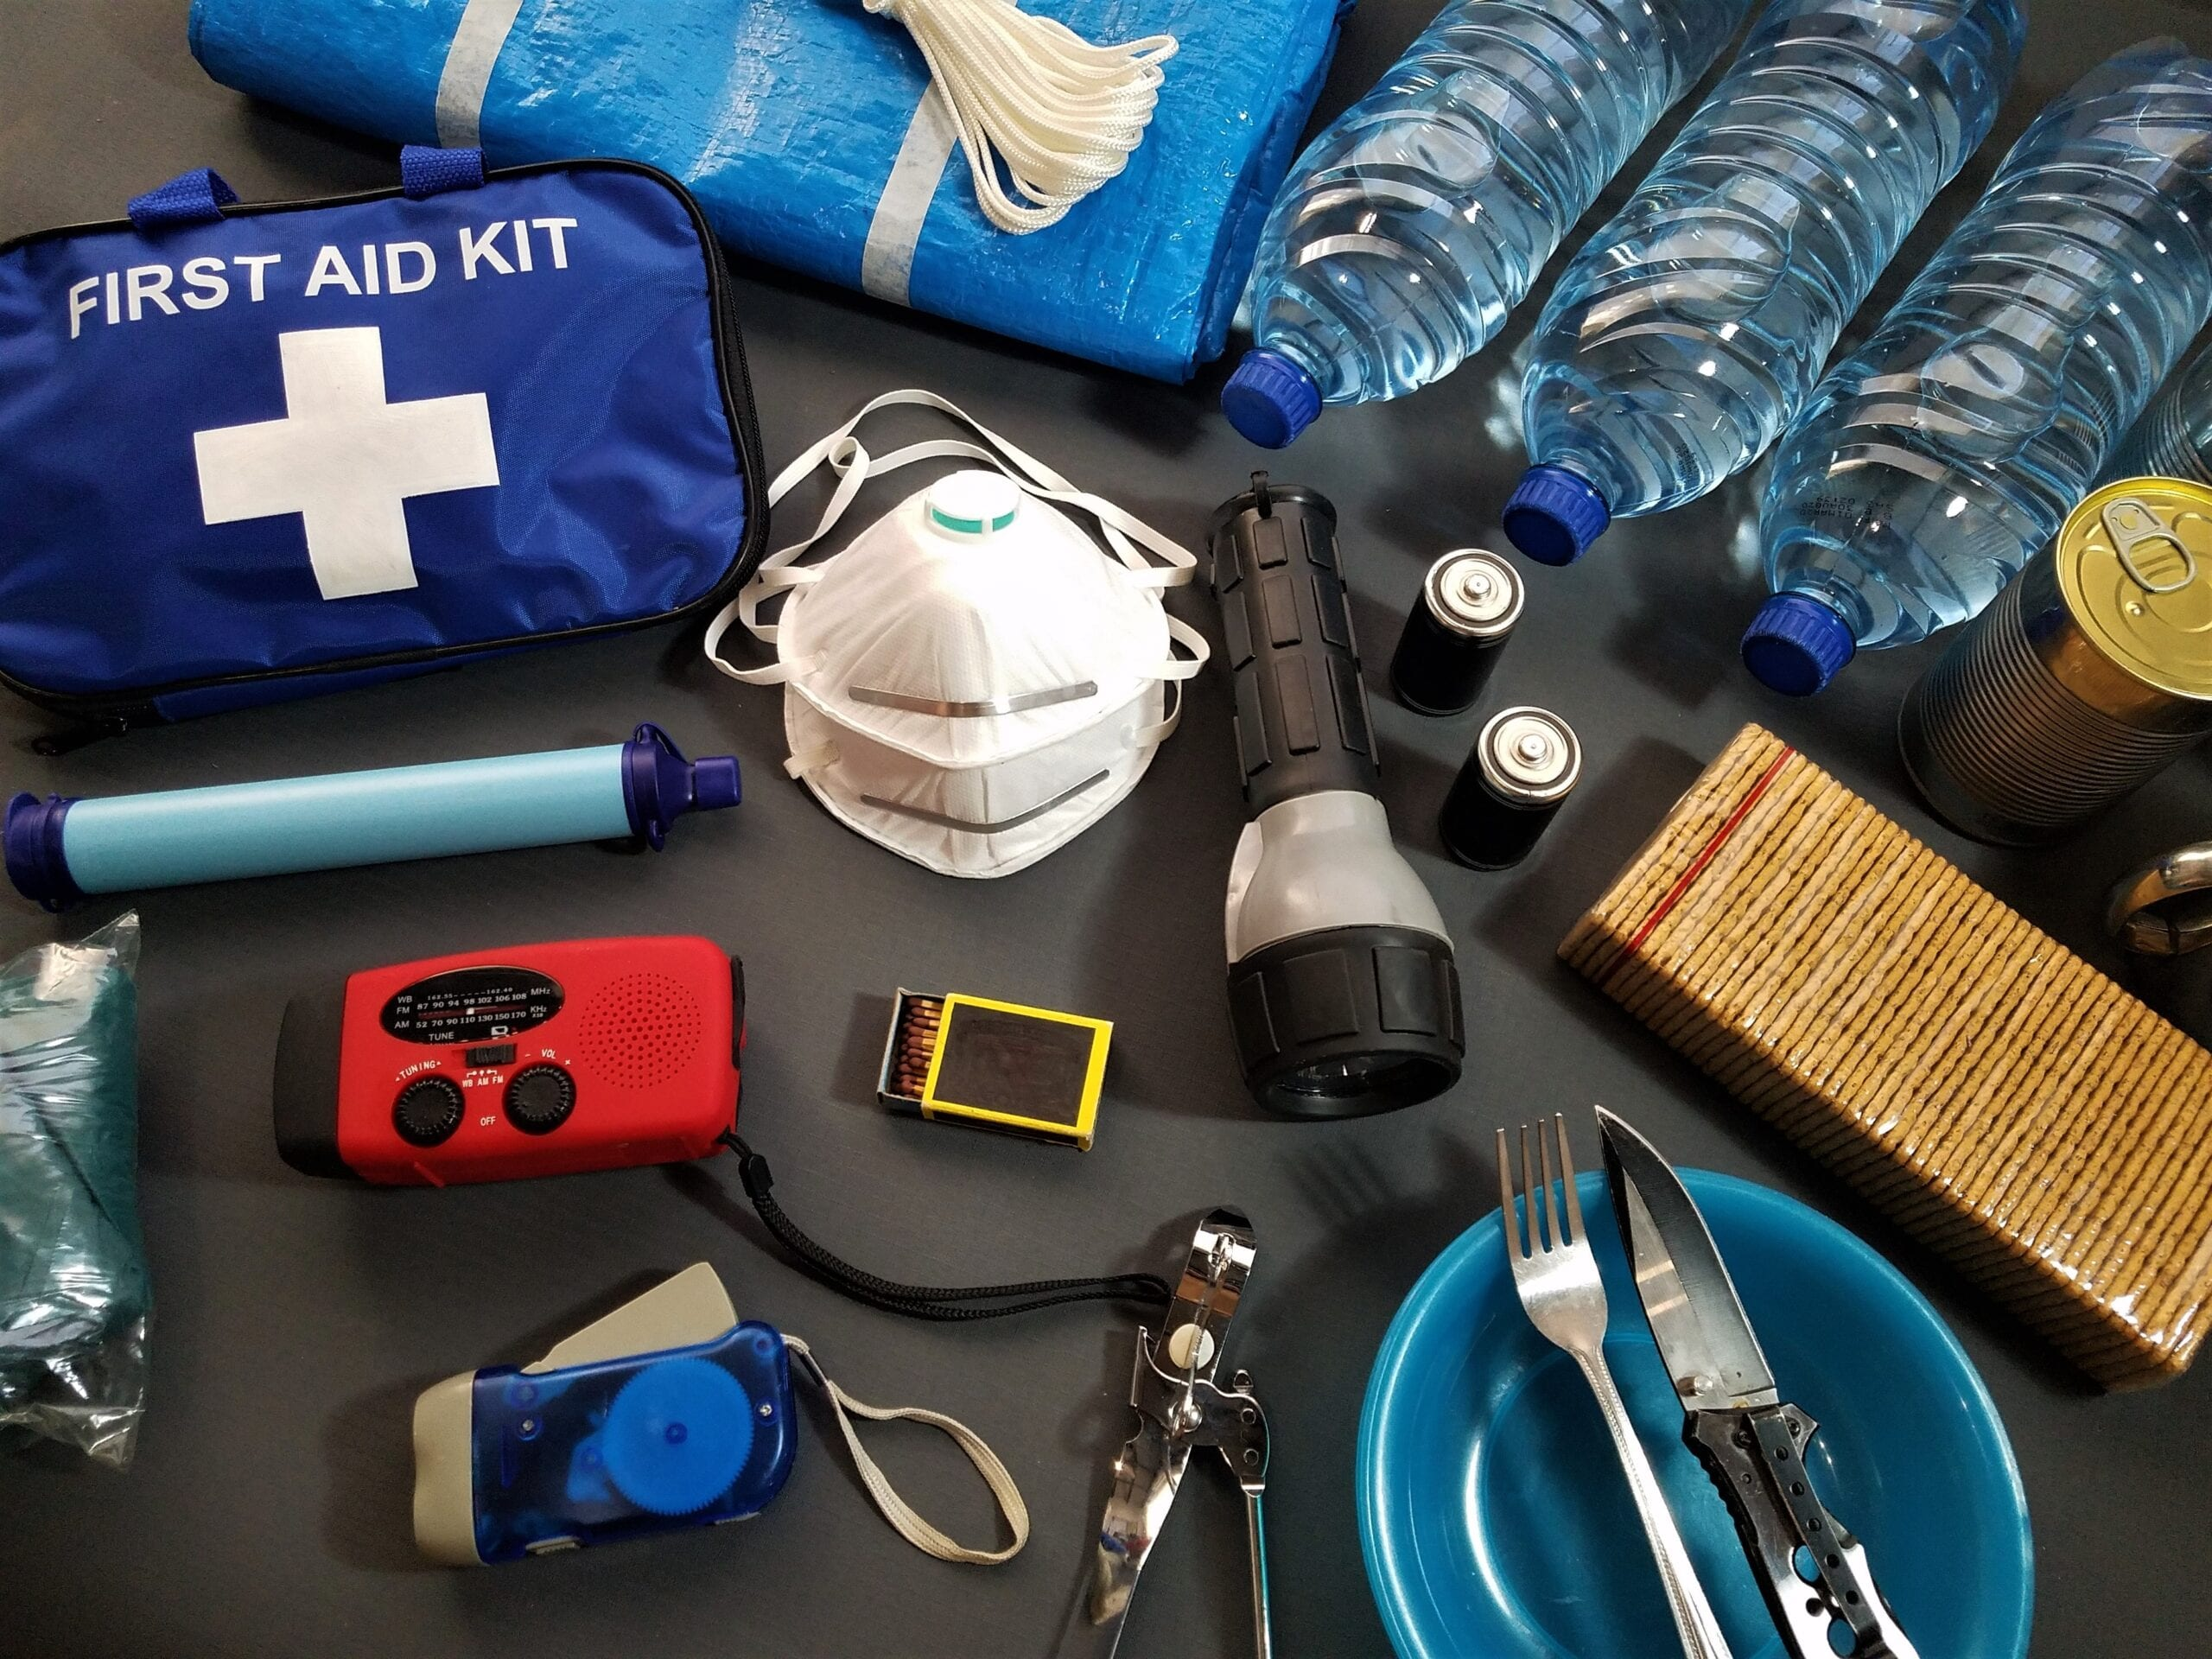 First aid kit and equipment spread out on a table